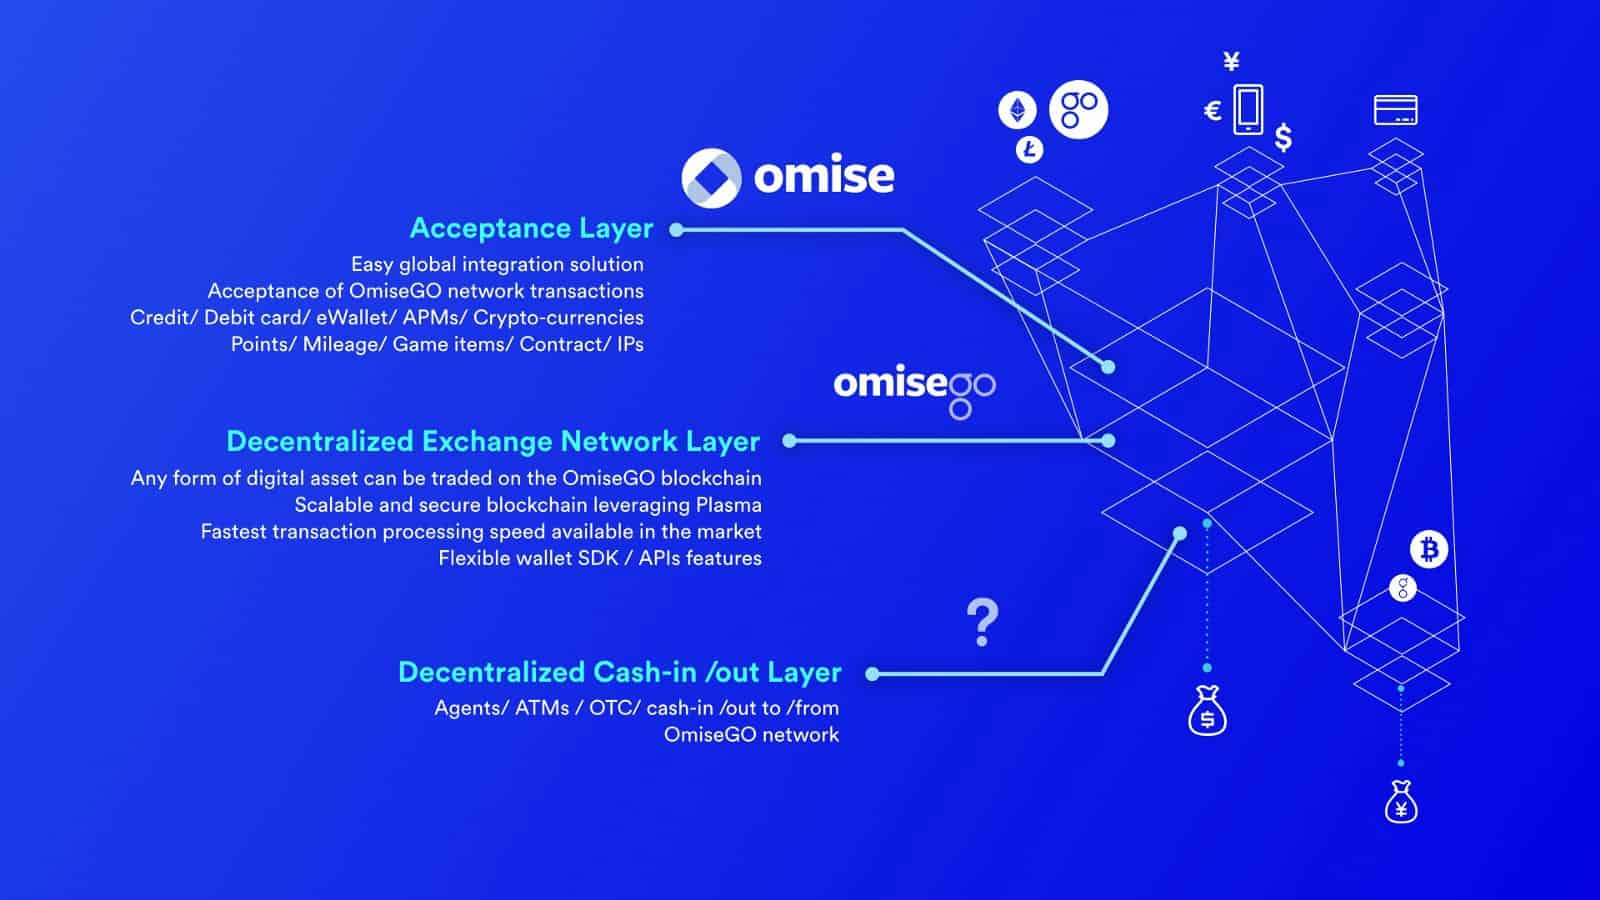 OmiseGO OMG architecture and purpose